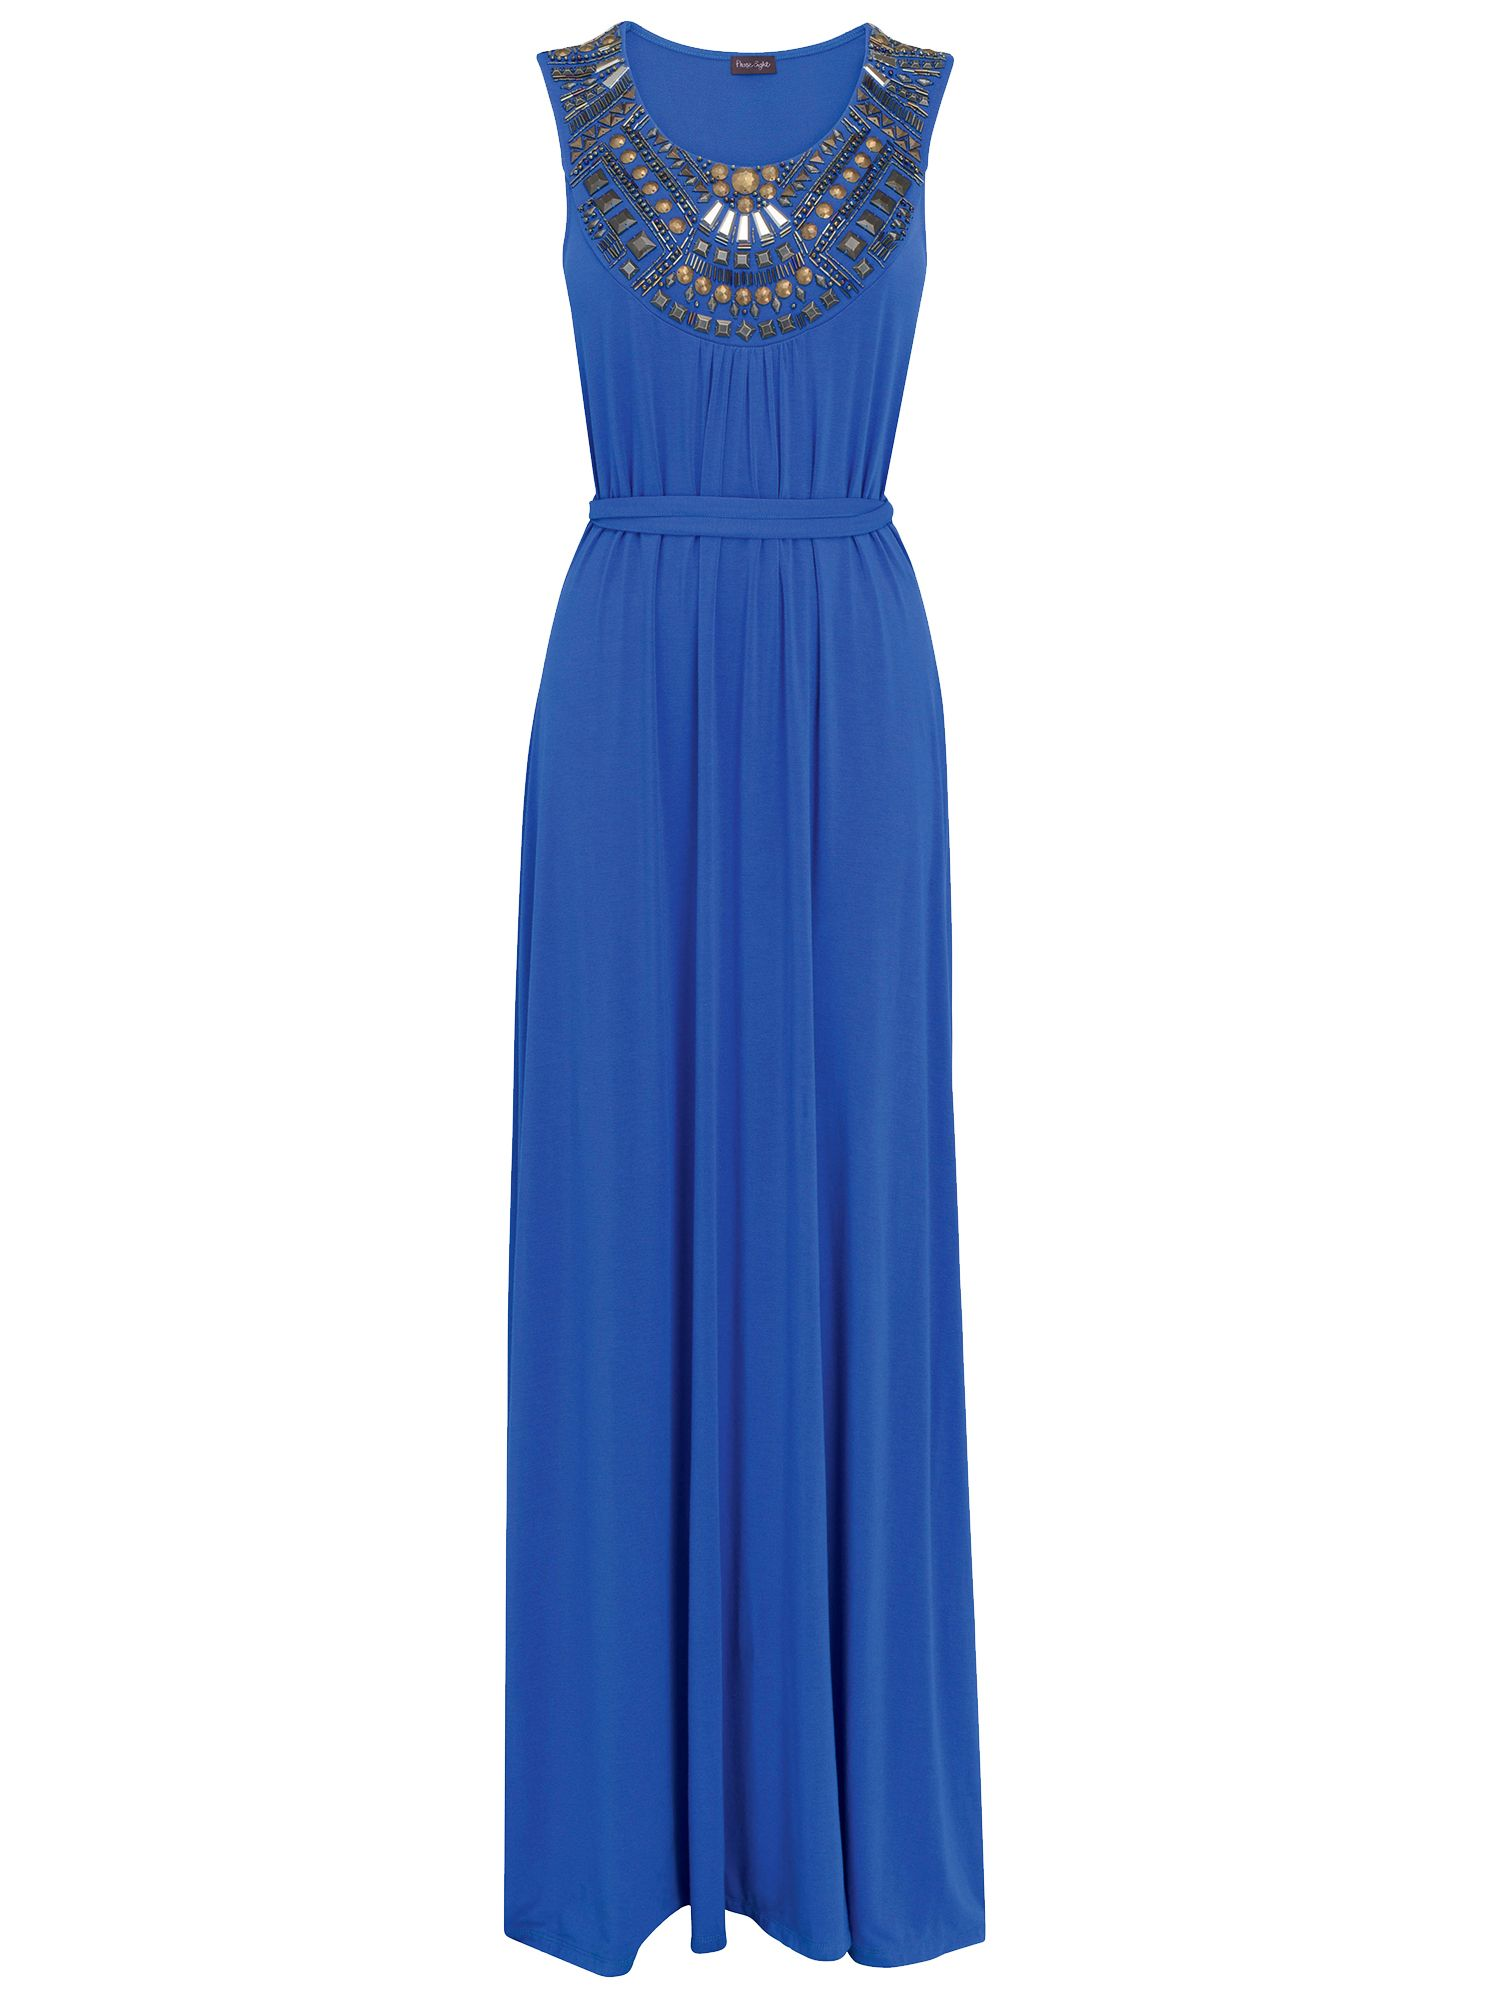 Ella embellished maxi dress